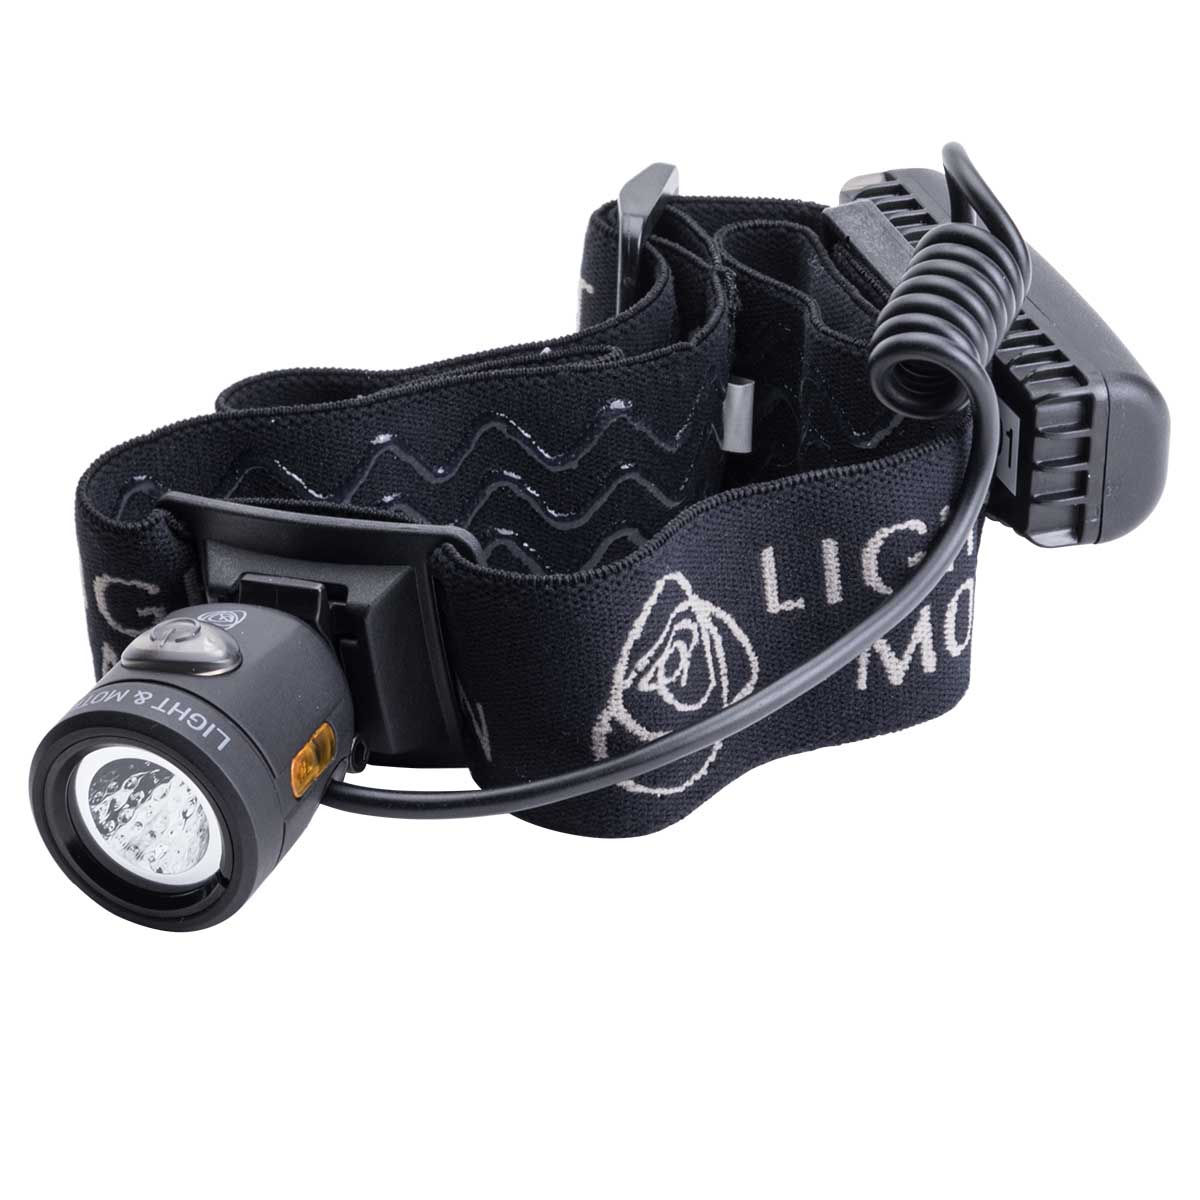 Eclairage Light & Motion Solite Pro 600 - One Size Noir